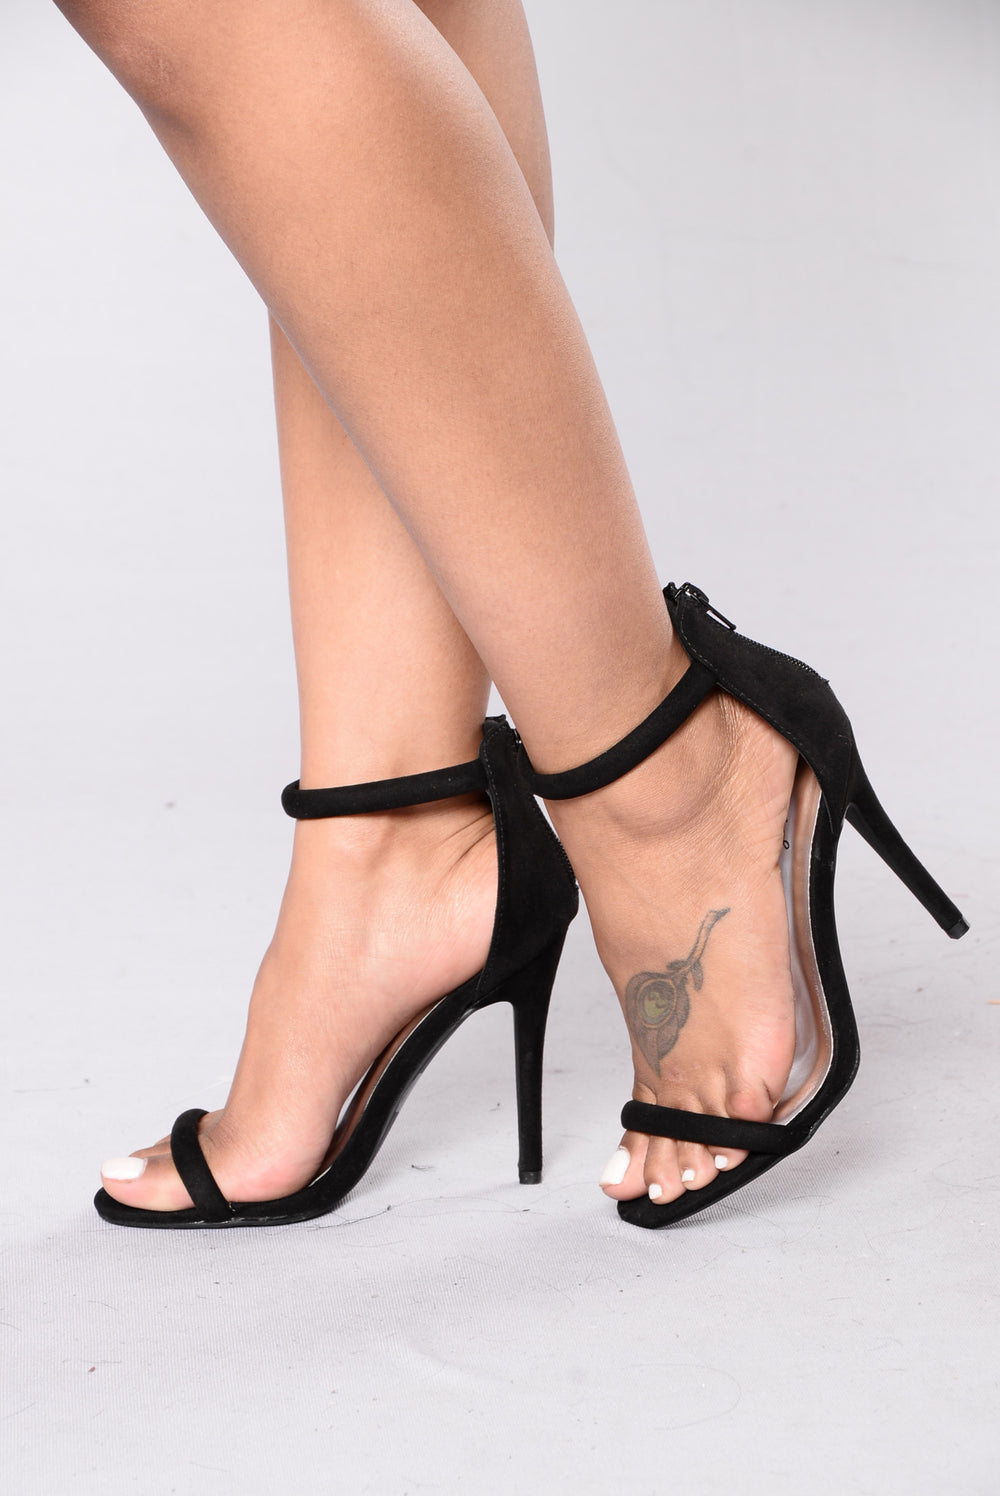 Anything But Basic Heels - Black